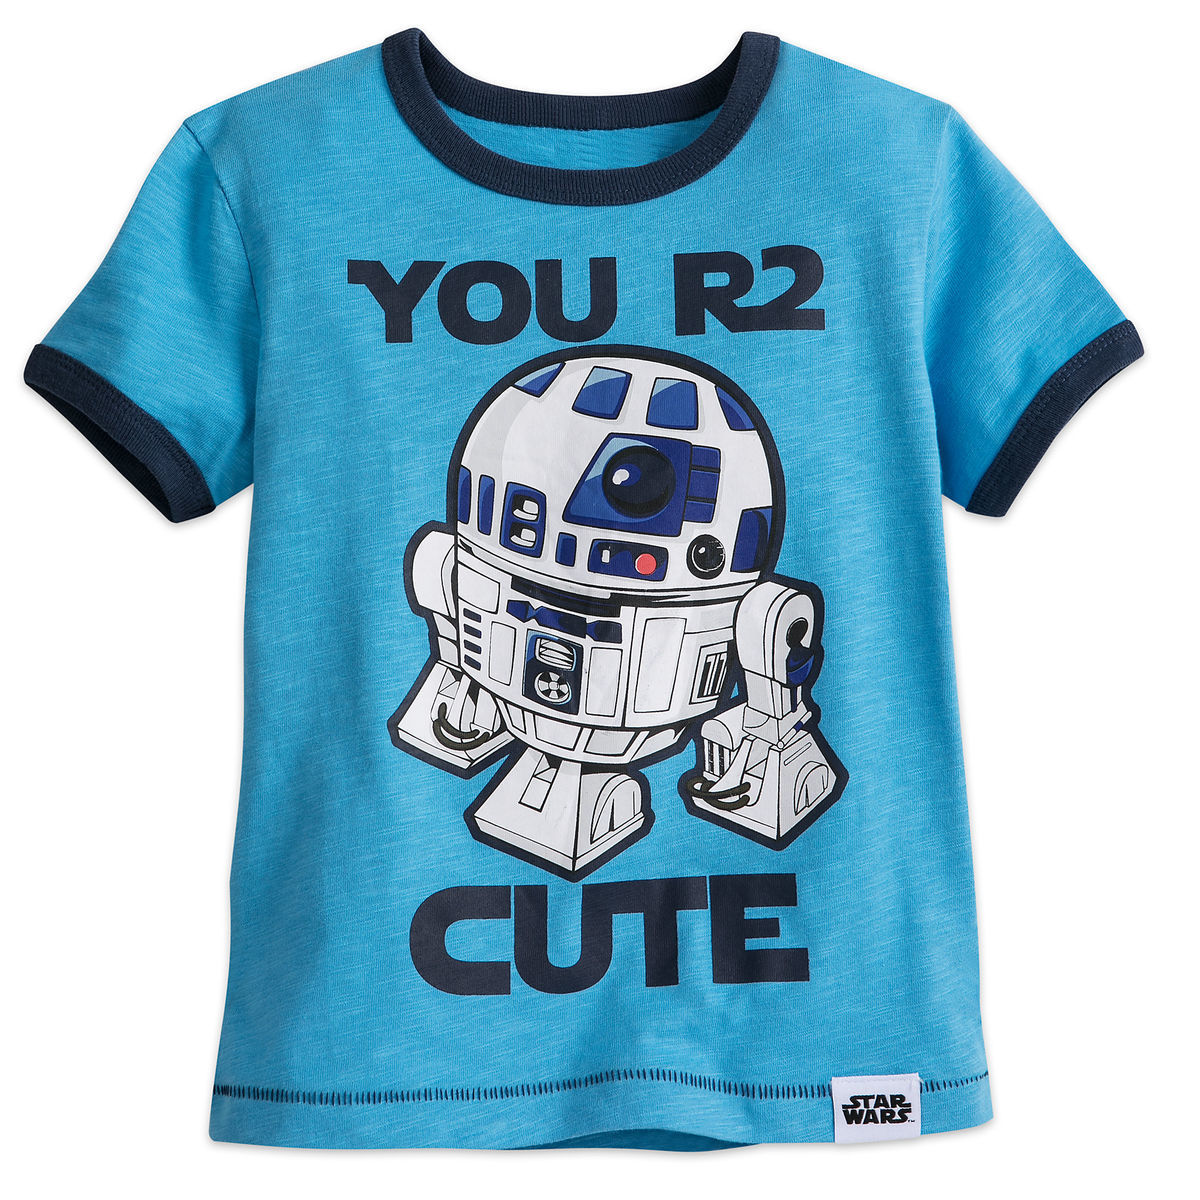 R2-D2 T-Shirt for Toddlers   shopDisney